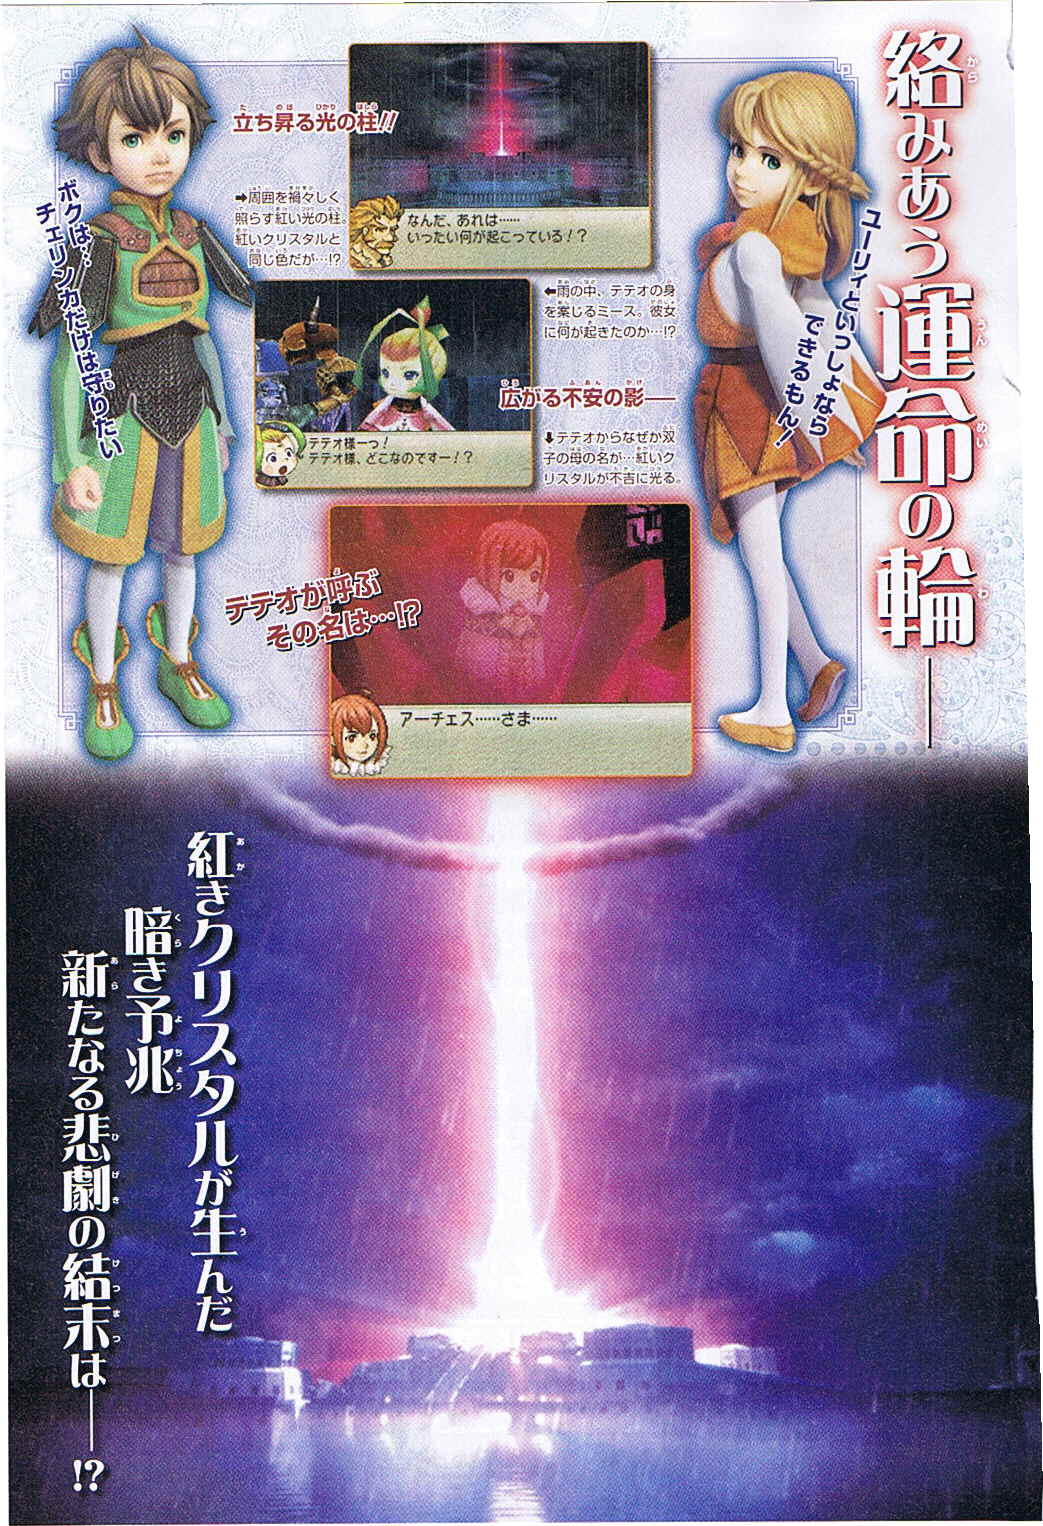 FFCC Ring of fates: Quelques infos [EDIT]